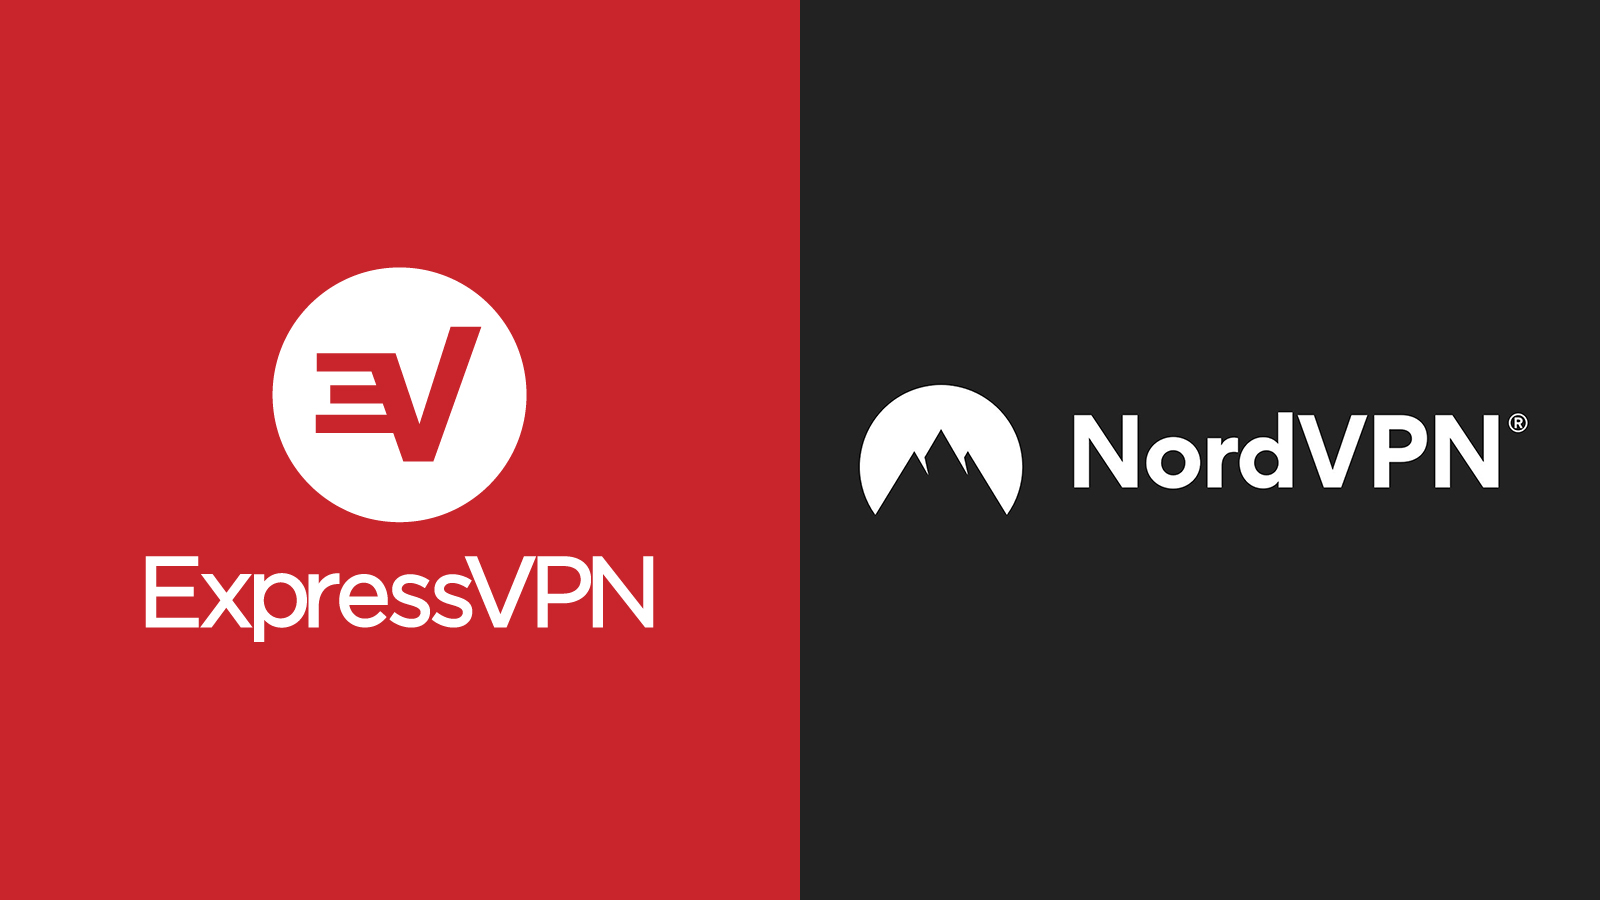 ExpressVPN vs NordVPN (2019) - Which One Should You Pick?